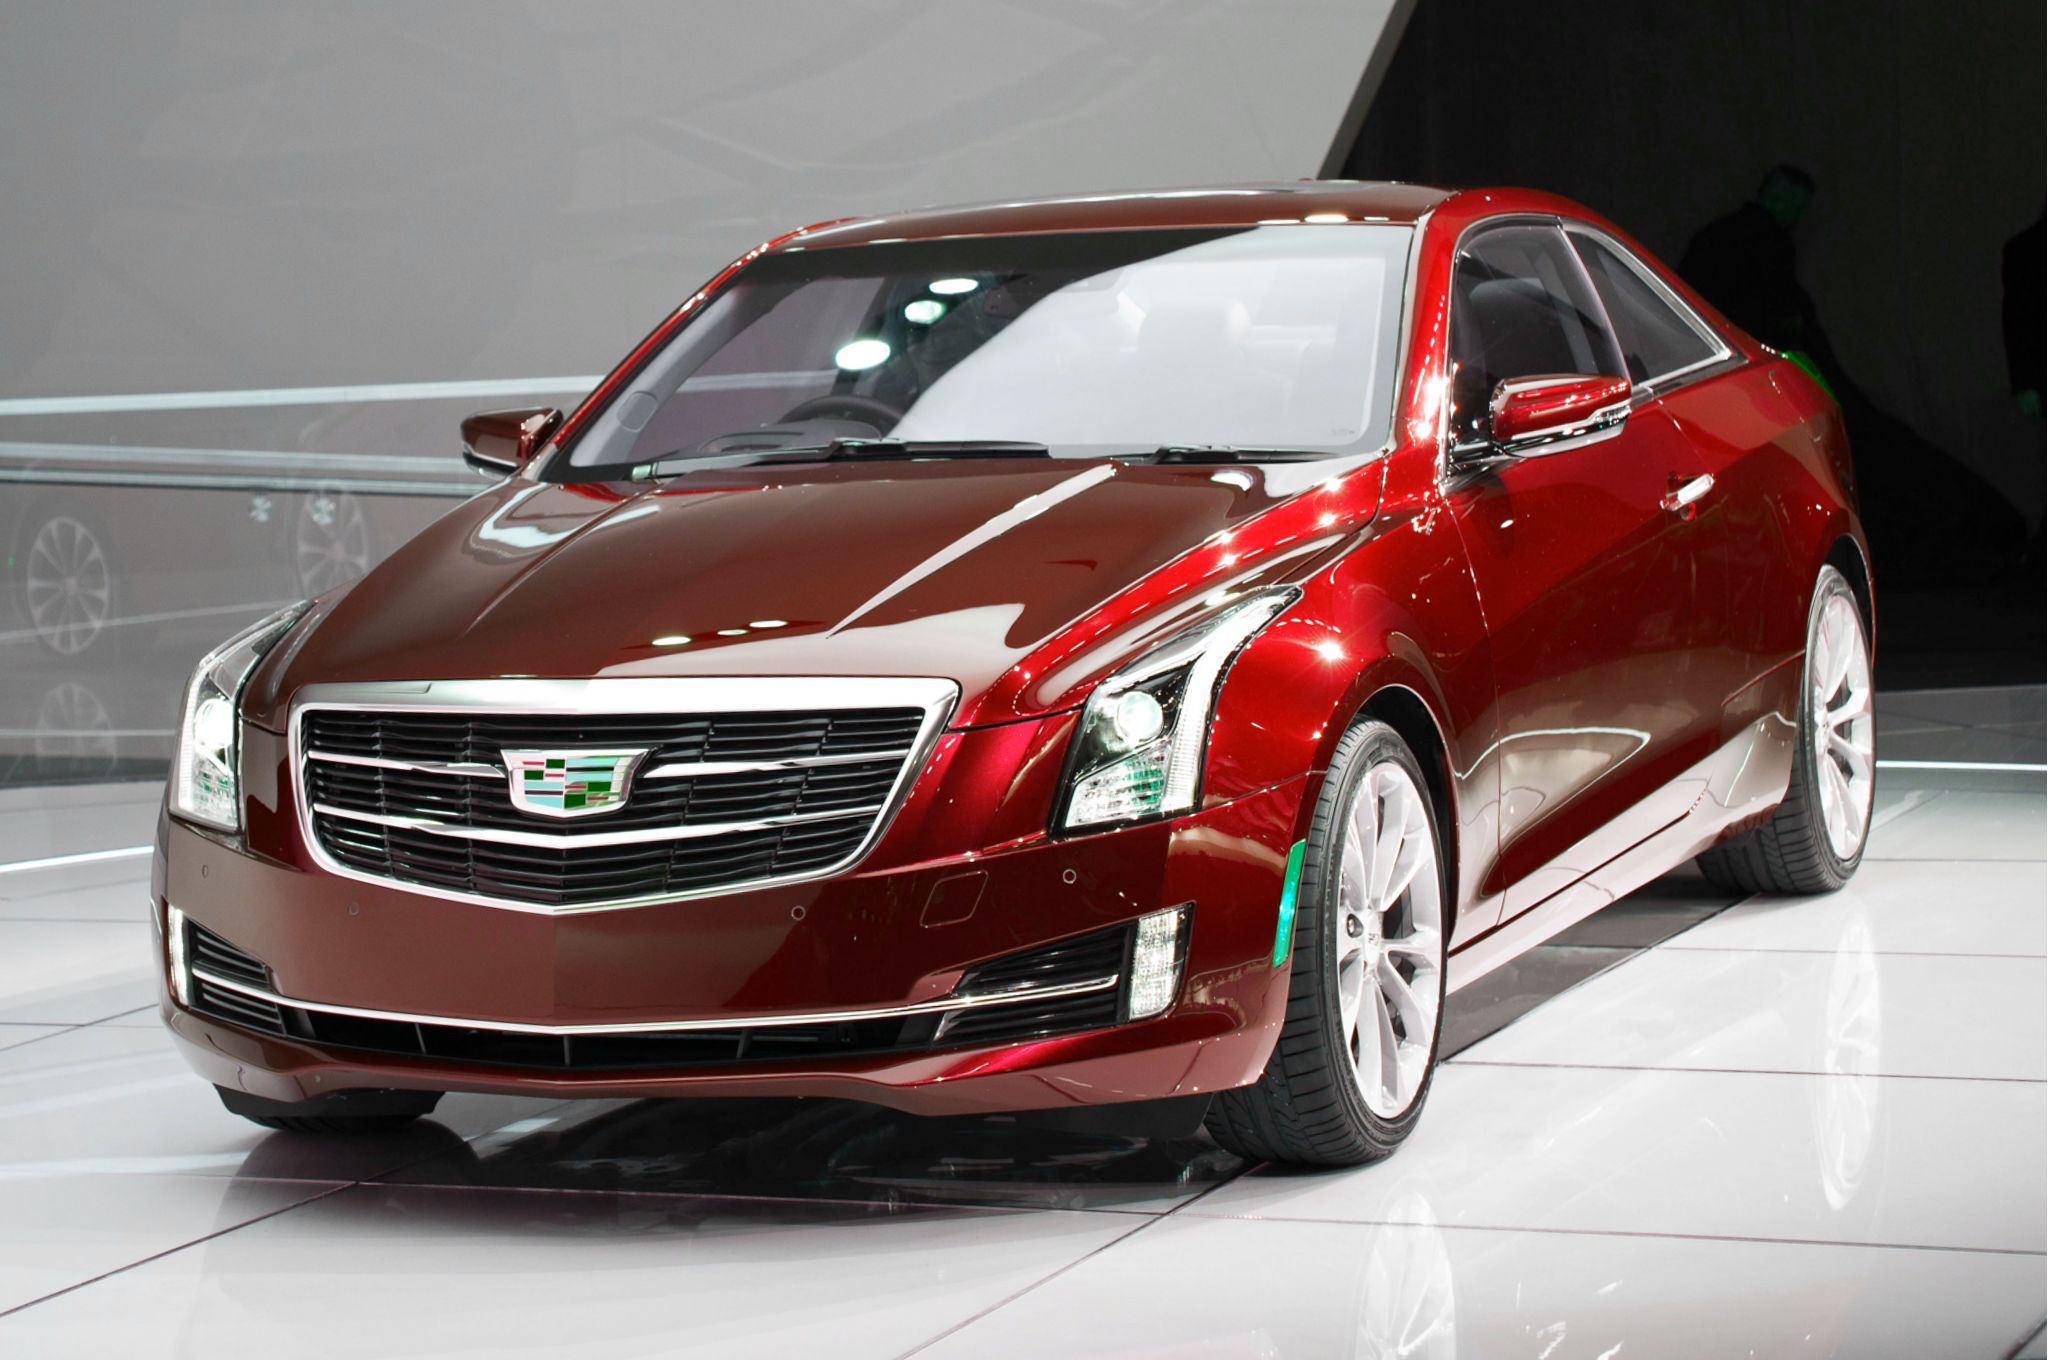 cadillac ats coupe 2015 reviews cadillac ats coupe 2015 car reviews. Black Bedroom Furniture Sets. Home Design Ideas